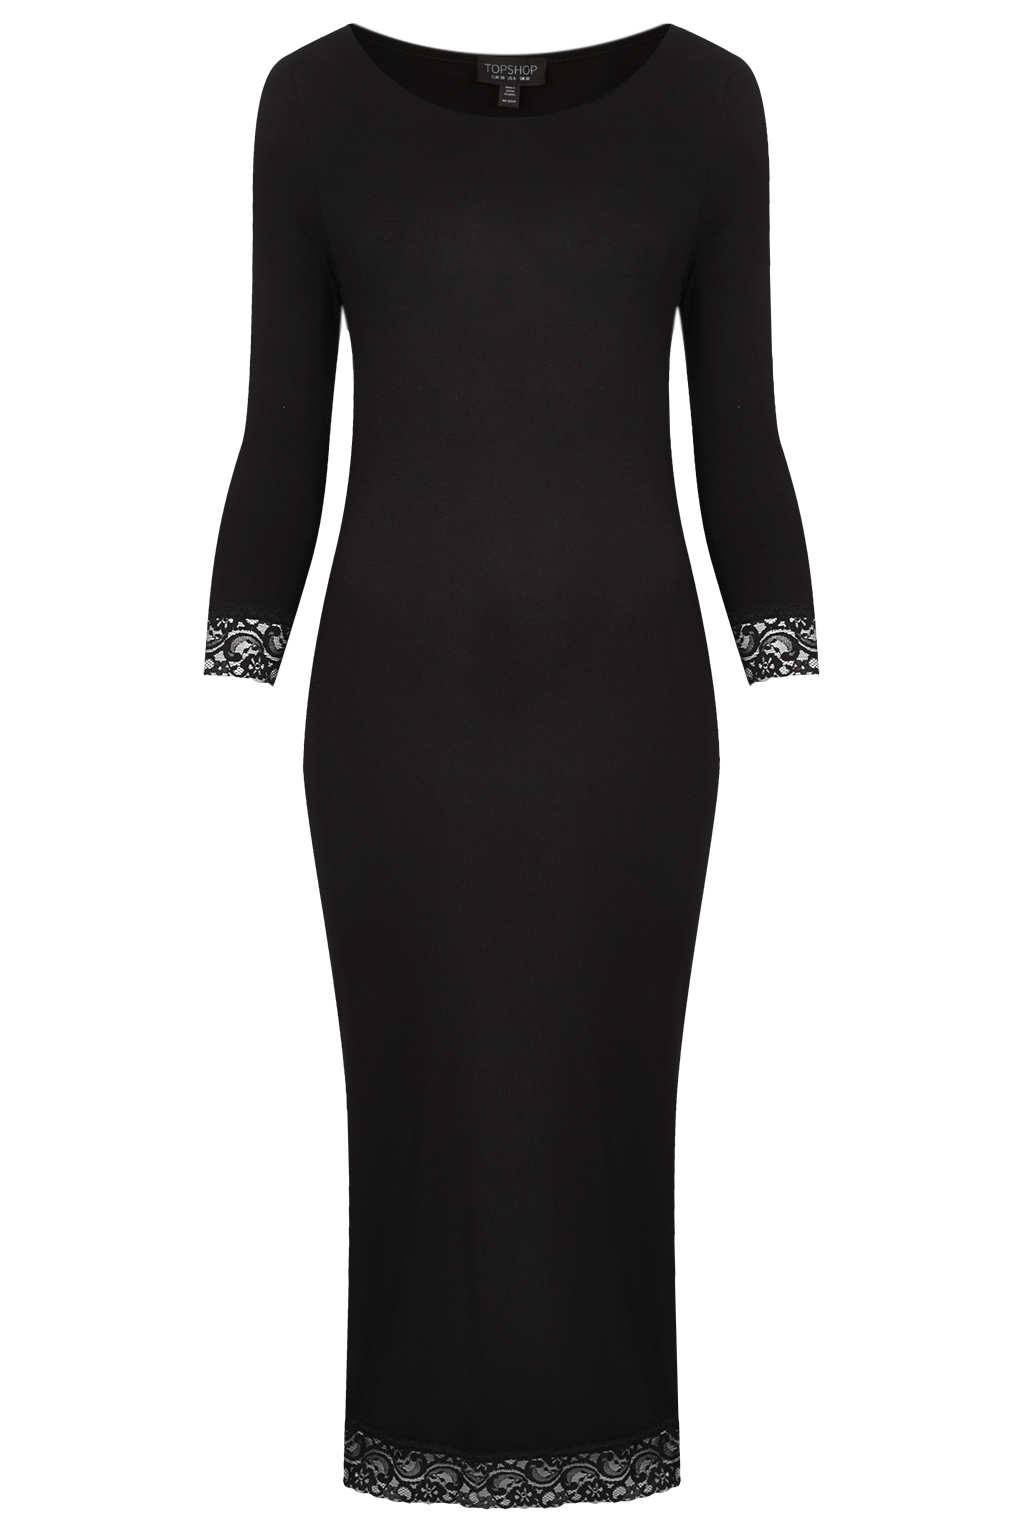 Bodycon Dresses Select a Category ( Lulus Stunning Introduction You Black Bodycon Midi Dress $48 Lulus Babes and Bubbly Black Bodycon Dress $45 Lulus Right Sheer, Right Now Navy Blue Lace Bodycon Dress $62 Lulus Majestic Petals Black and Purple Embroidered Bodycon Midi Dress.